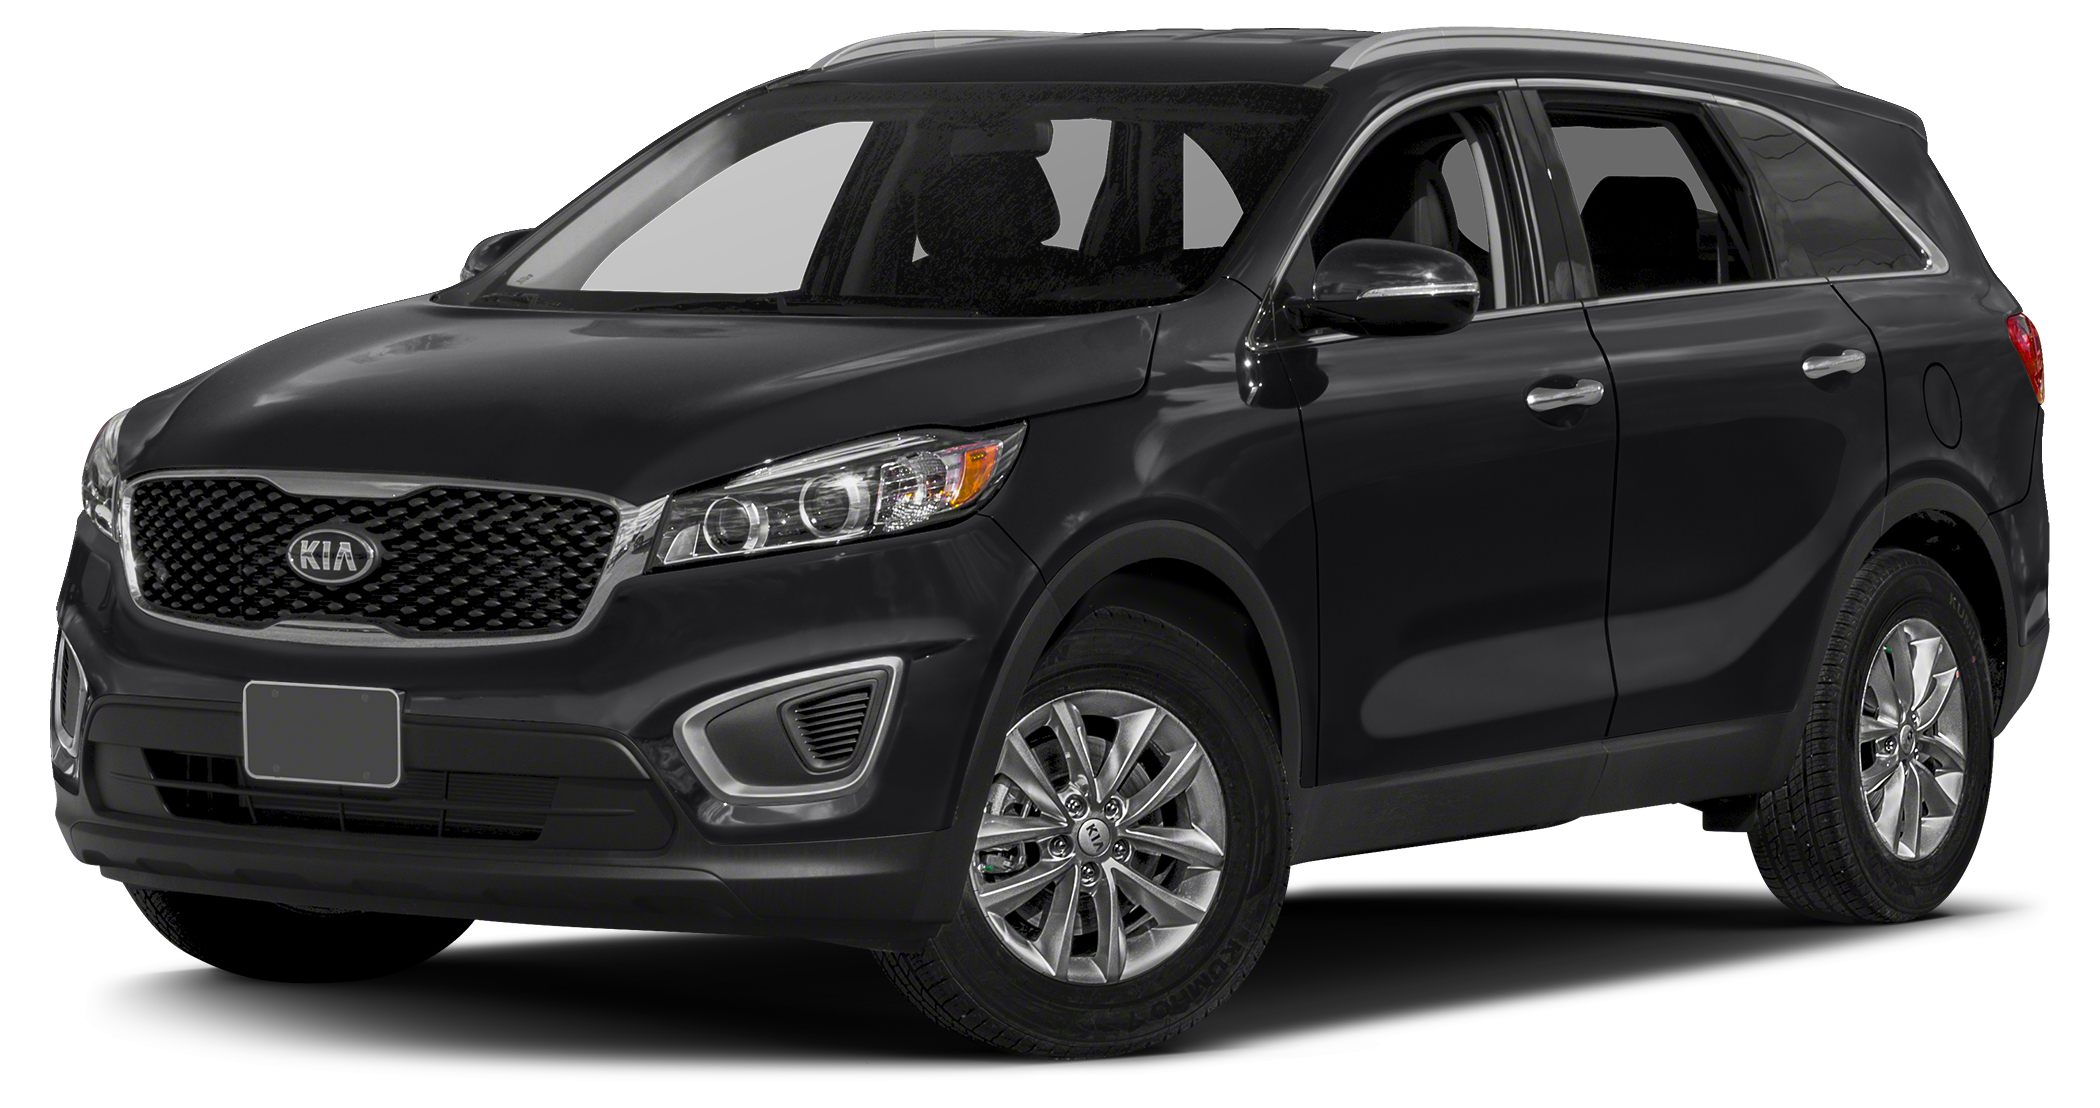 2016 Kia Sorento  Miles 35542Color Ebony Black Stock UC2138 VIN 5XYPG4A38GG020432